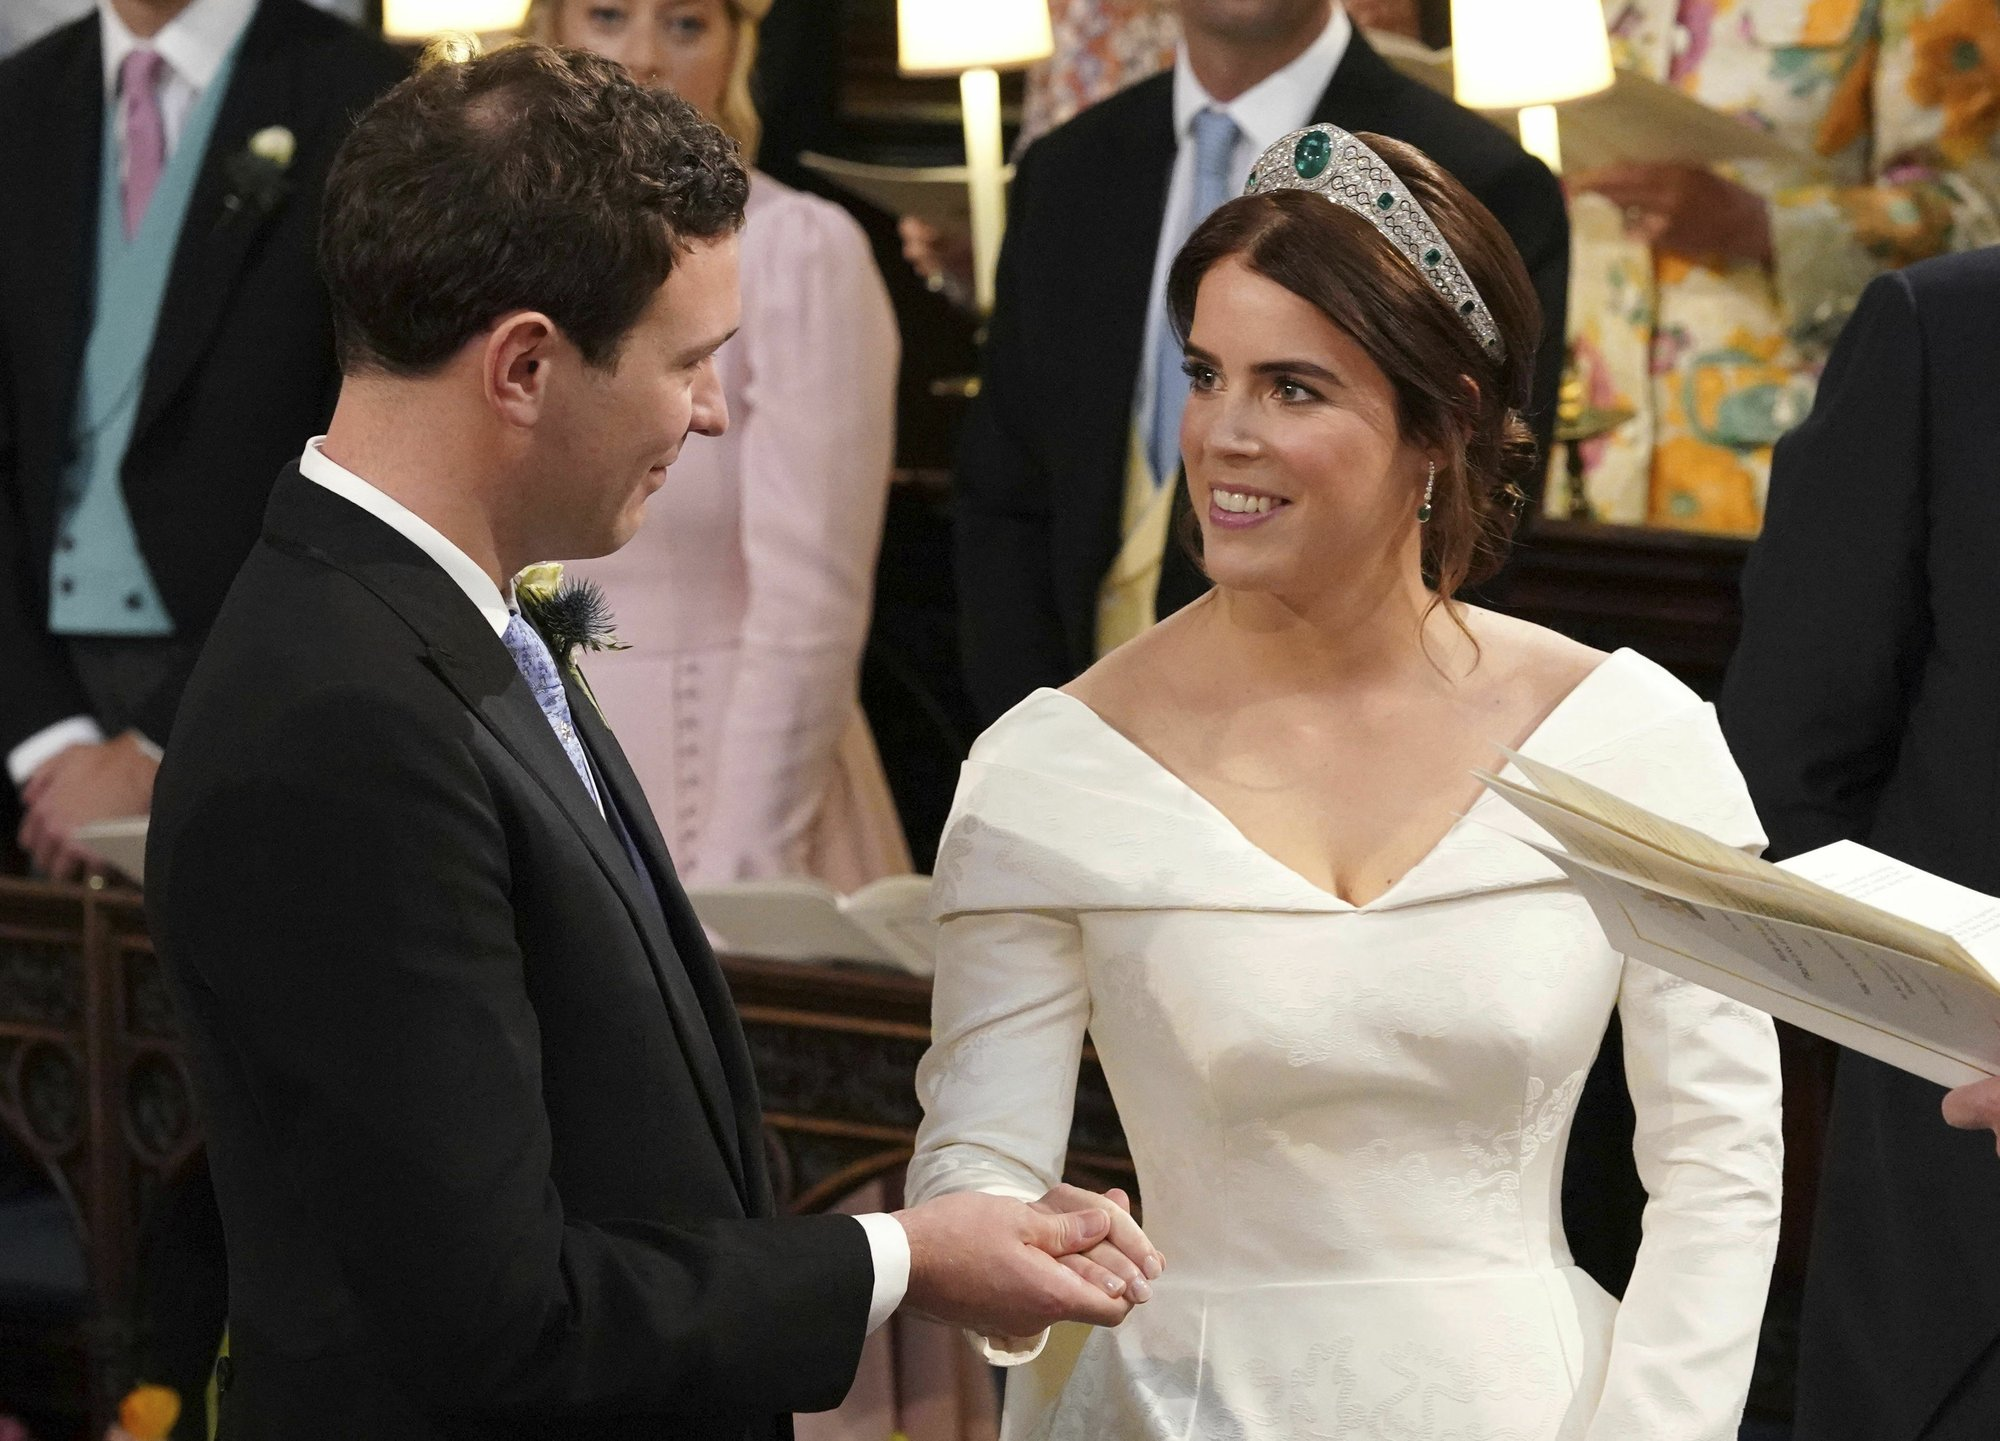 Britain's Princess Eugenie weds her beau at Windsor Castle